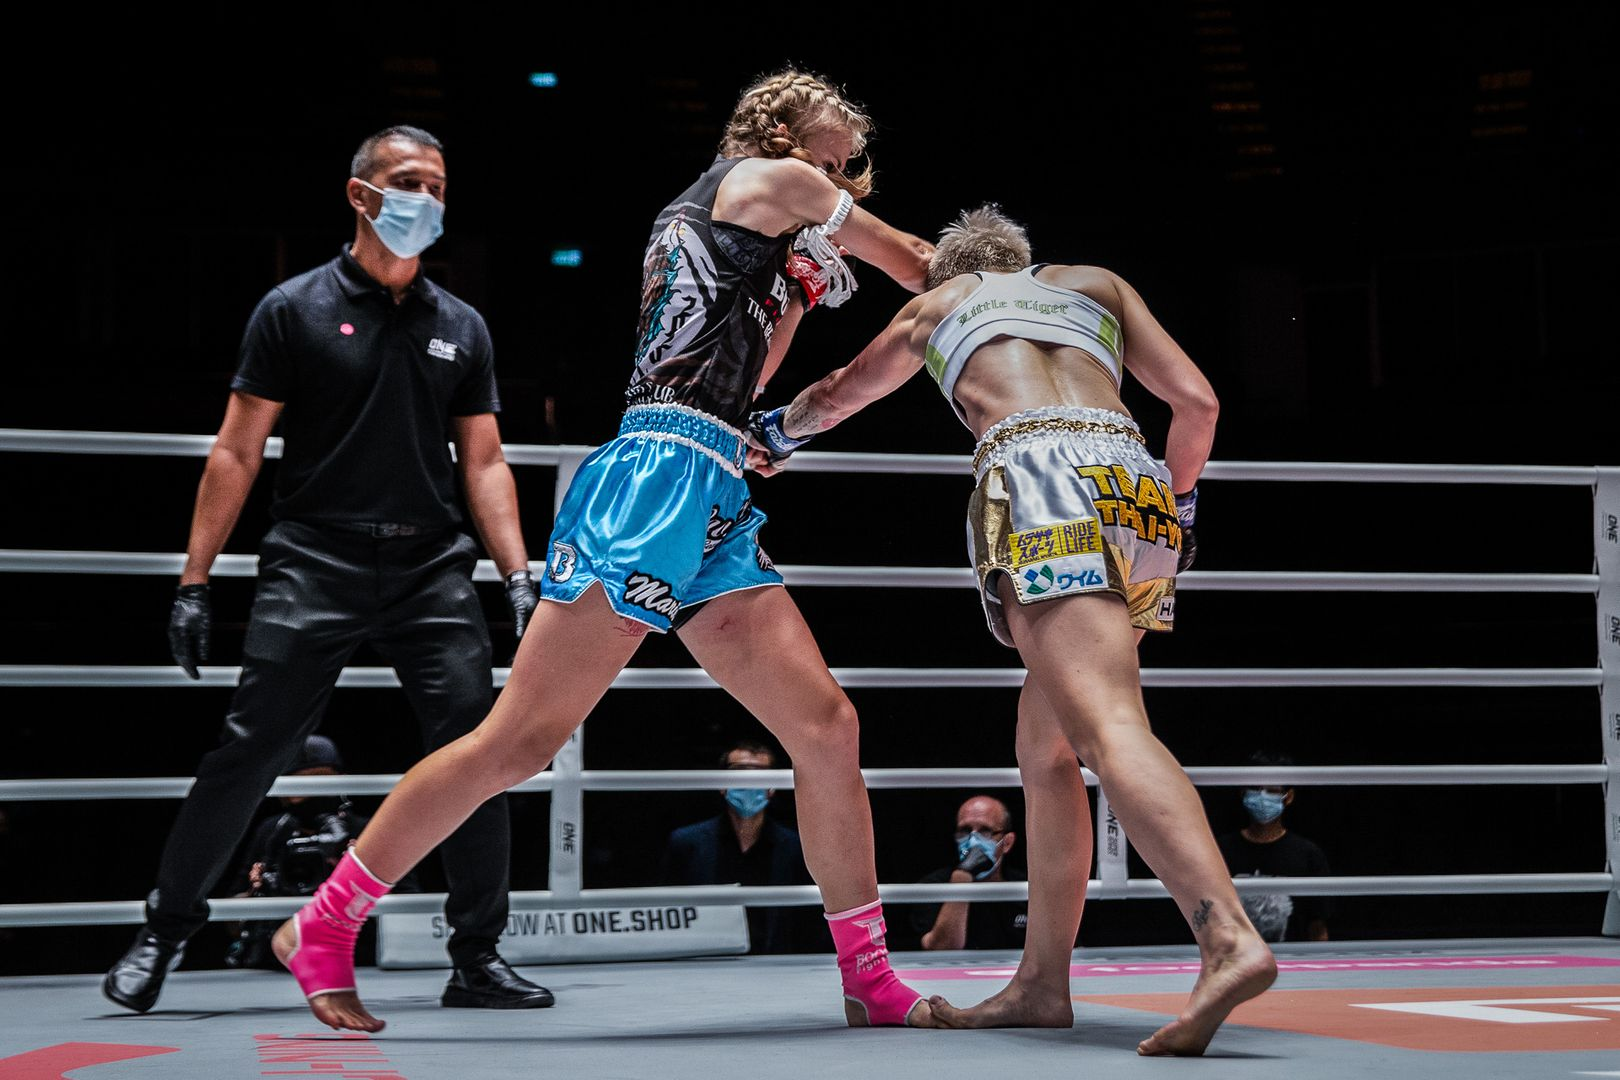 Estonia's Marie Ruumet throws an elbow at Little Tiger